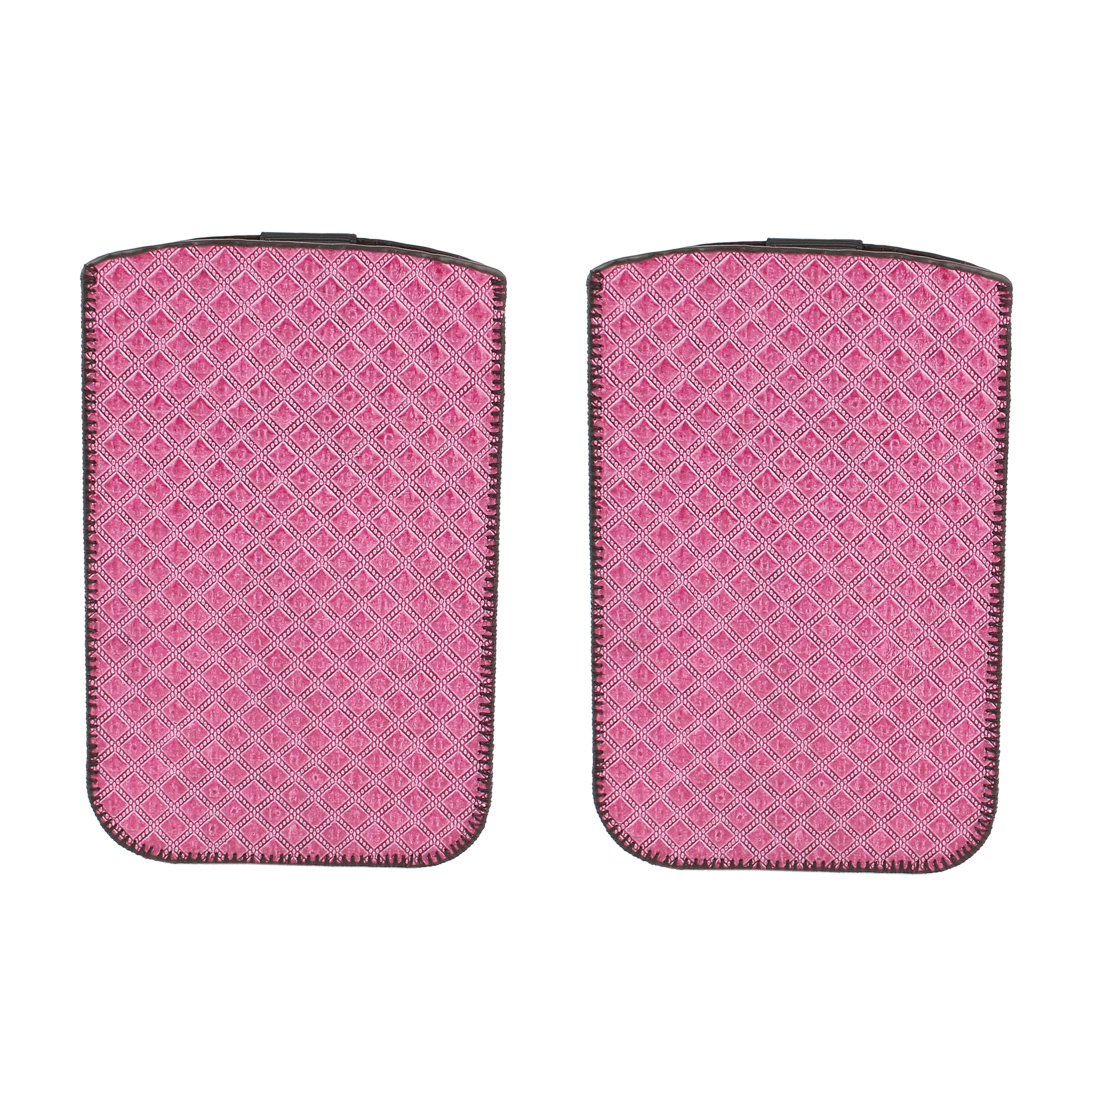 2 Pcs Fuchsia Faux Leather Checkered Prints Vertical Bag Holder Case for Cell Phone